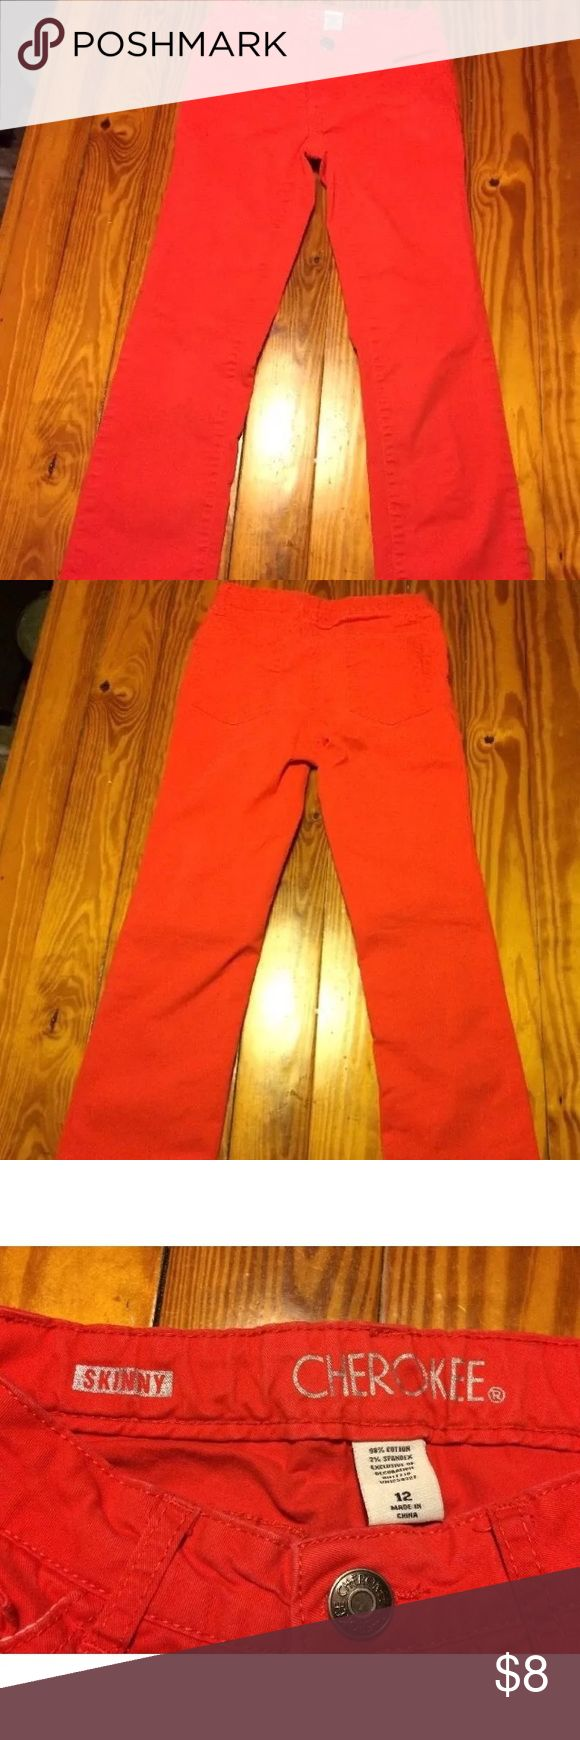 Girl's CHEROKEE Skinny Red Pants Girl's CHEROKEE Pants - Red - Skinny Fit - Size 12 - Adjustable Waist Cherokee Bottoms Casual